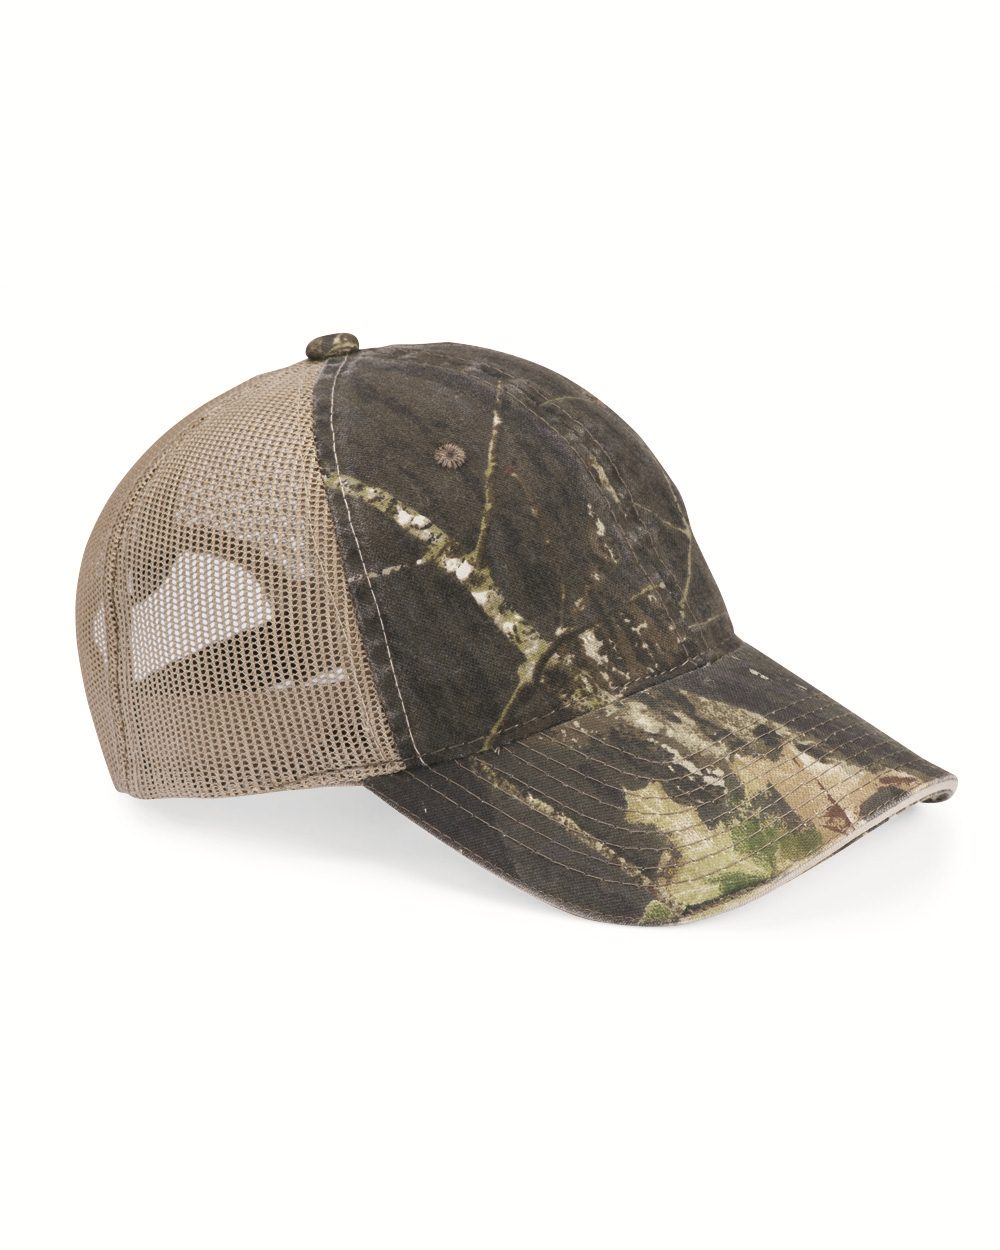 Outdoor Cap Washed Brushed Mesh Cap - CGWM301